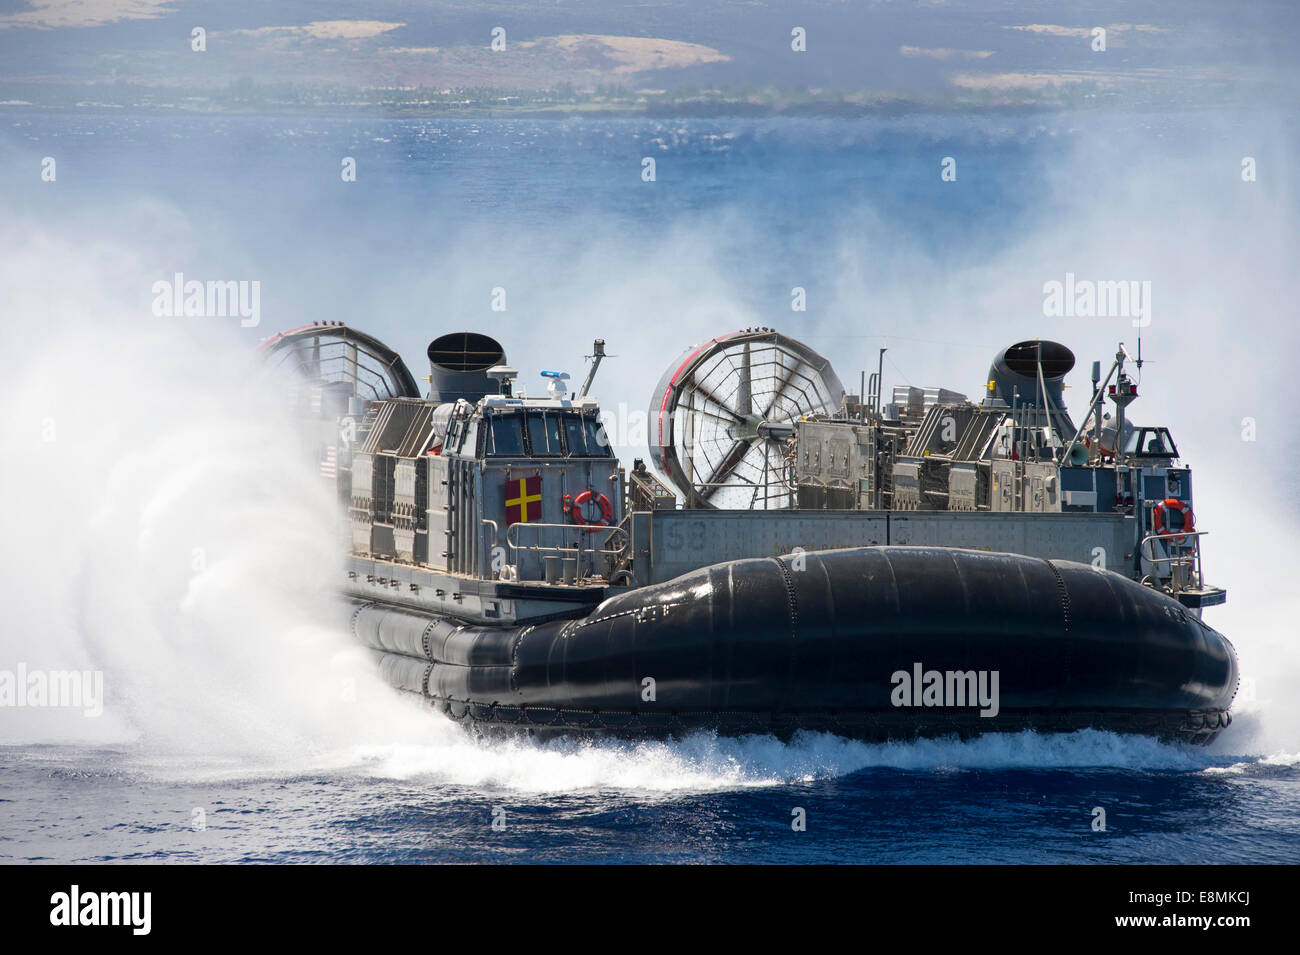 Pacific Ocean, July 23, 2014 - A landing craft air cushion prepares to embark the well deck of the amphibious dock - Stock Image